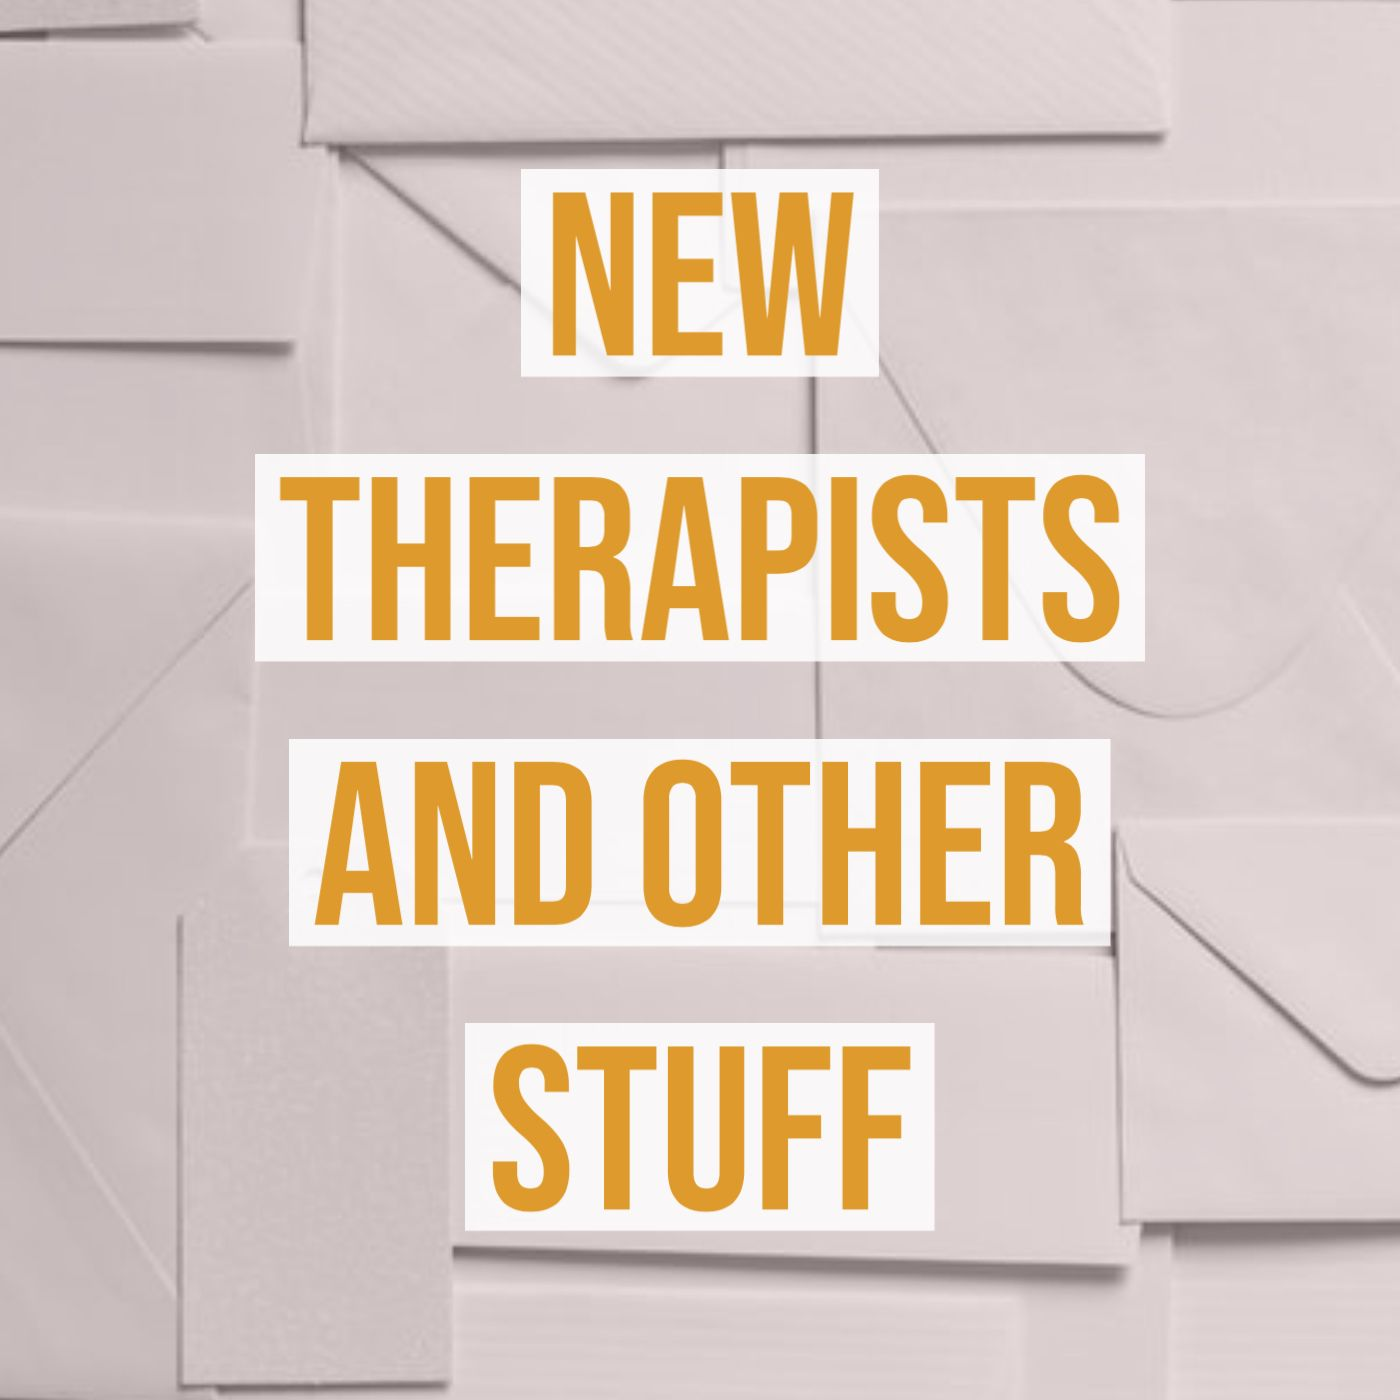 New Therapists and Other Stuff